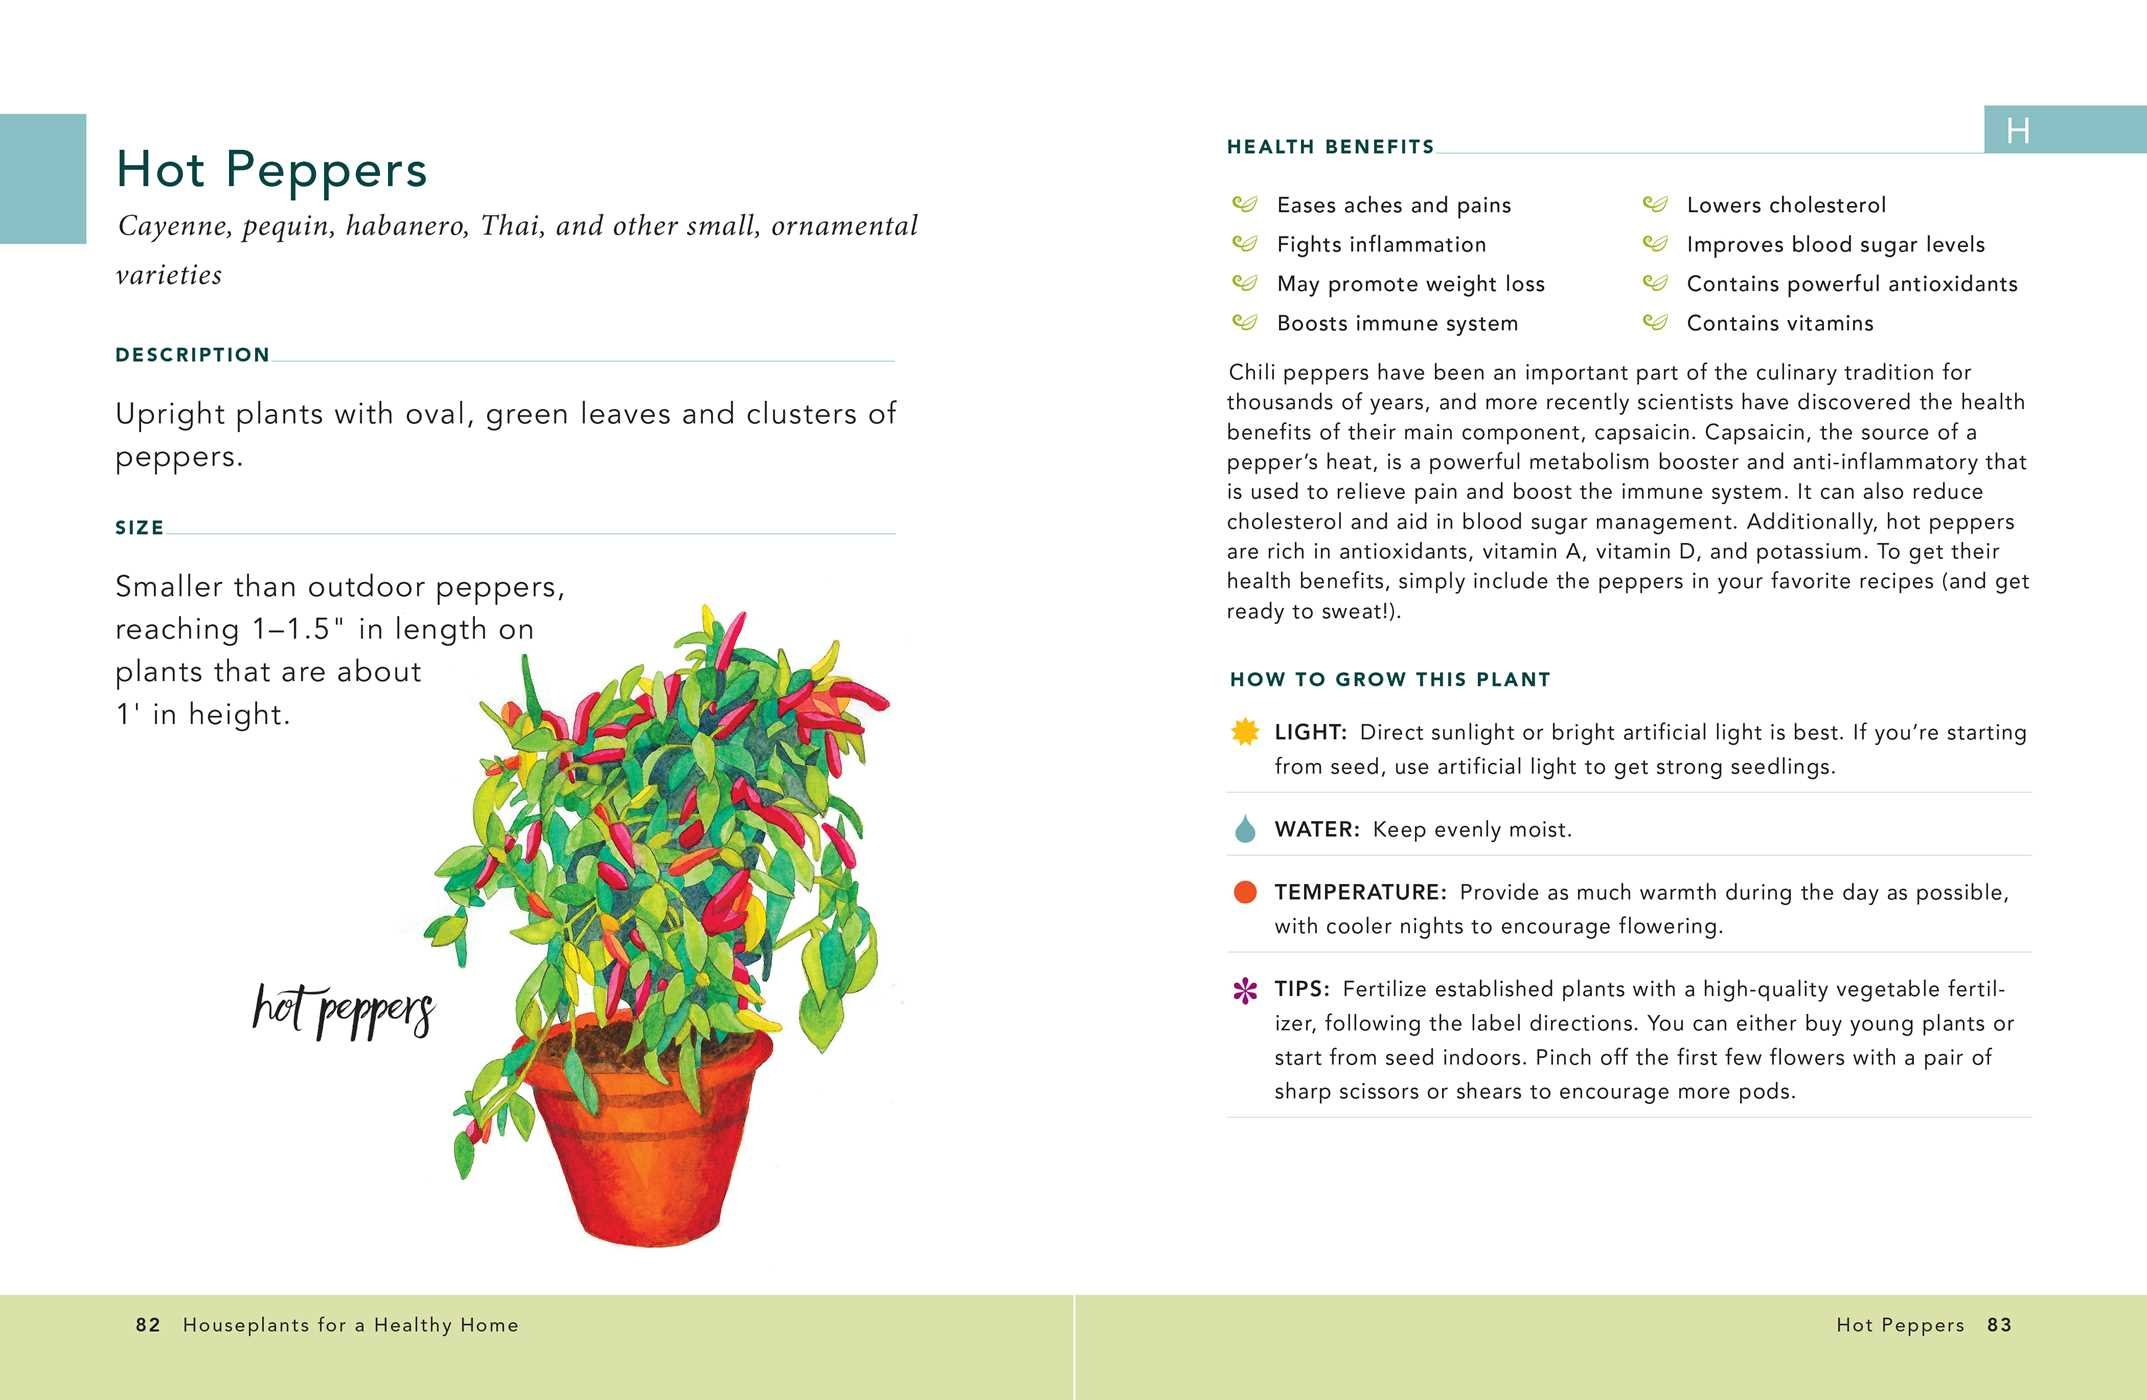 Houseplants For A Healthy Home 50 Indoor Plants To Help You Breathe Better Sleep Better And Feel Better All Year Round Vanzile Jon 9781507207291 Amazon Com Books,Budget Friendly Home Bar Ideas On A Budget